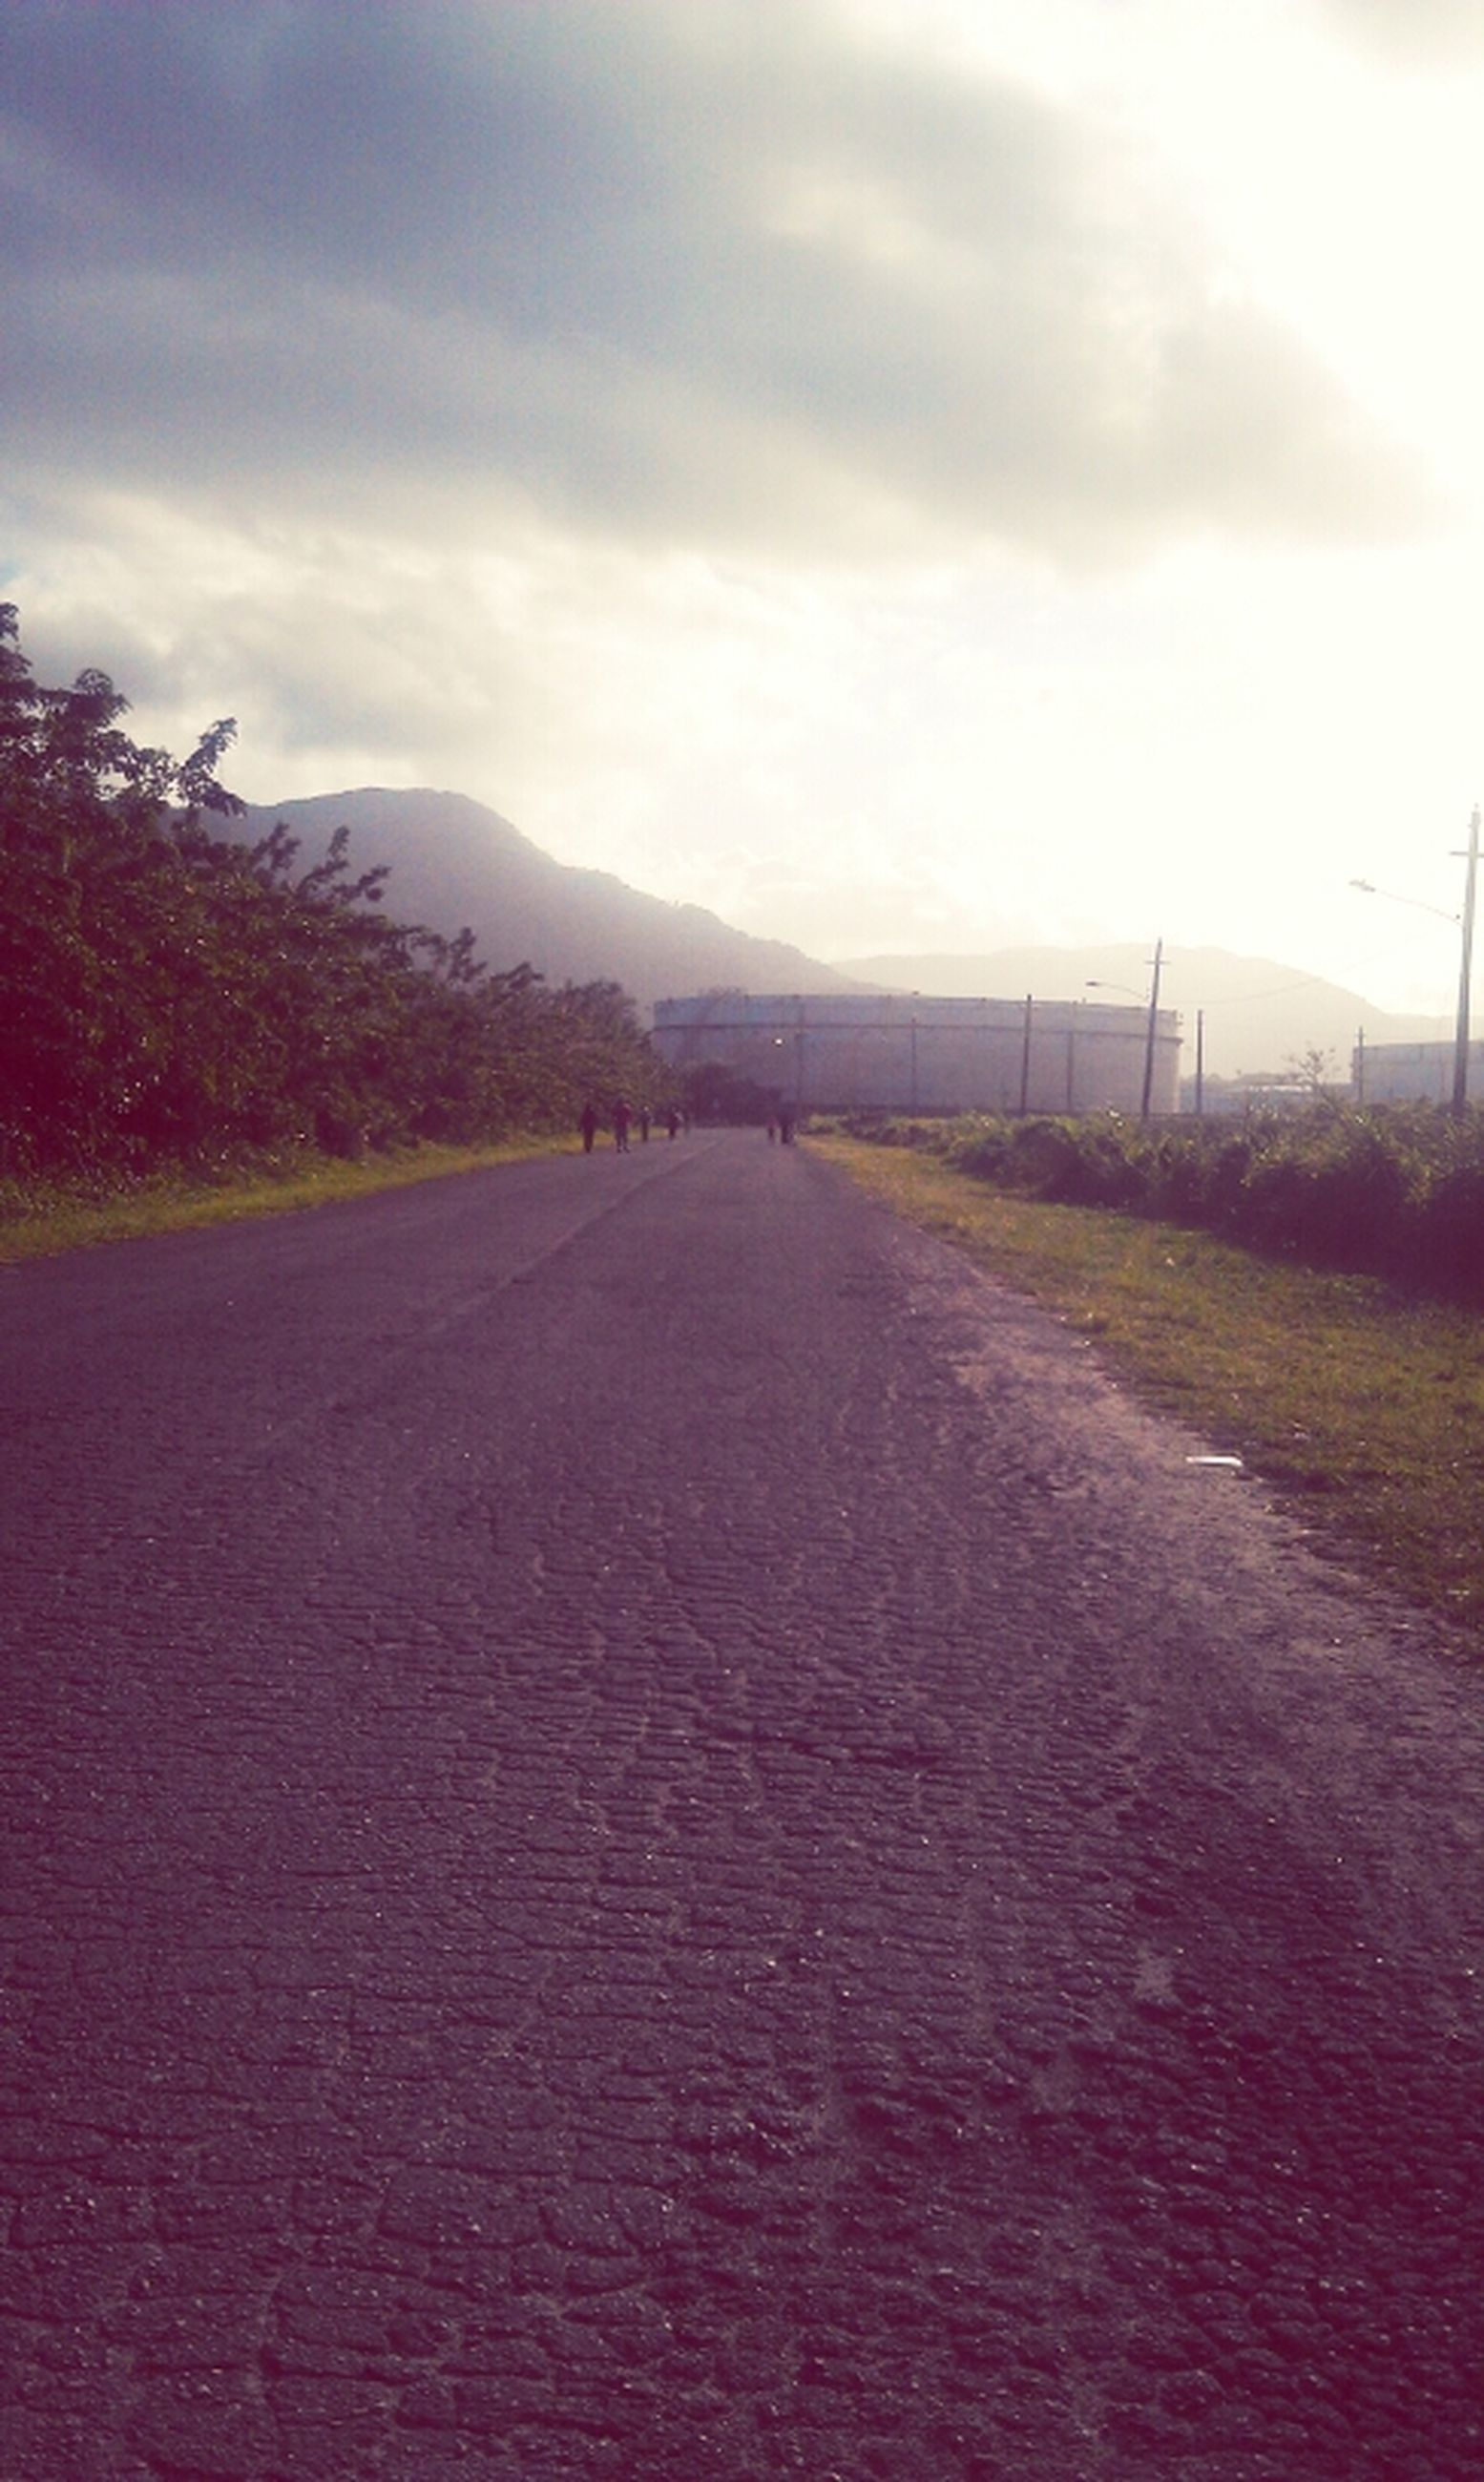 the way forward, sky, cloud - sky, cloudy, road, diminishing perspective, vanishing point, tranquil scene, tranquility, cloud, transportation, landscape, empty, country road, mountain, overcast, nature, scenics, weather, beauty in nature